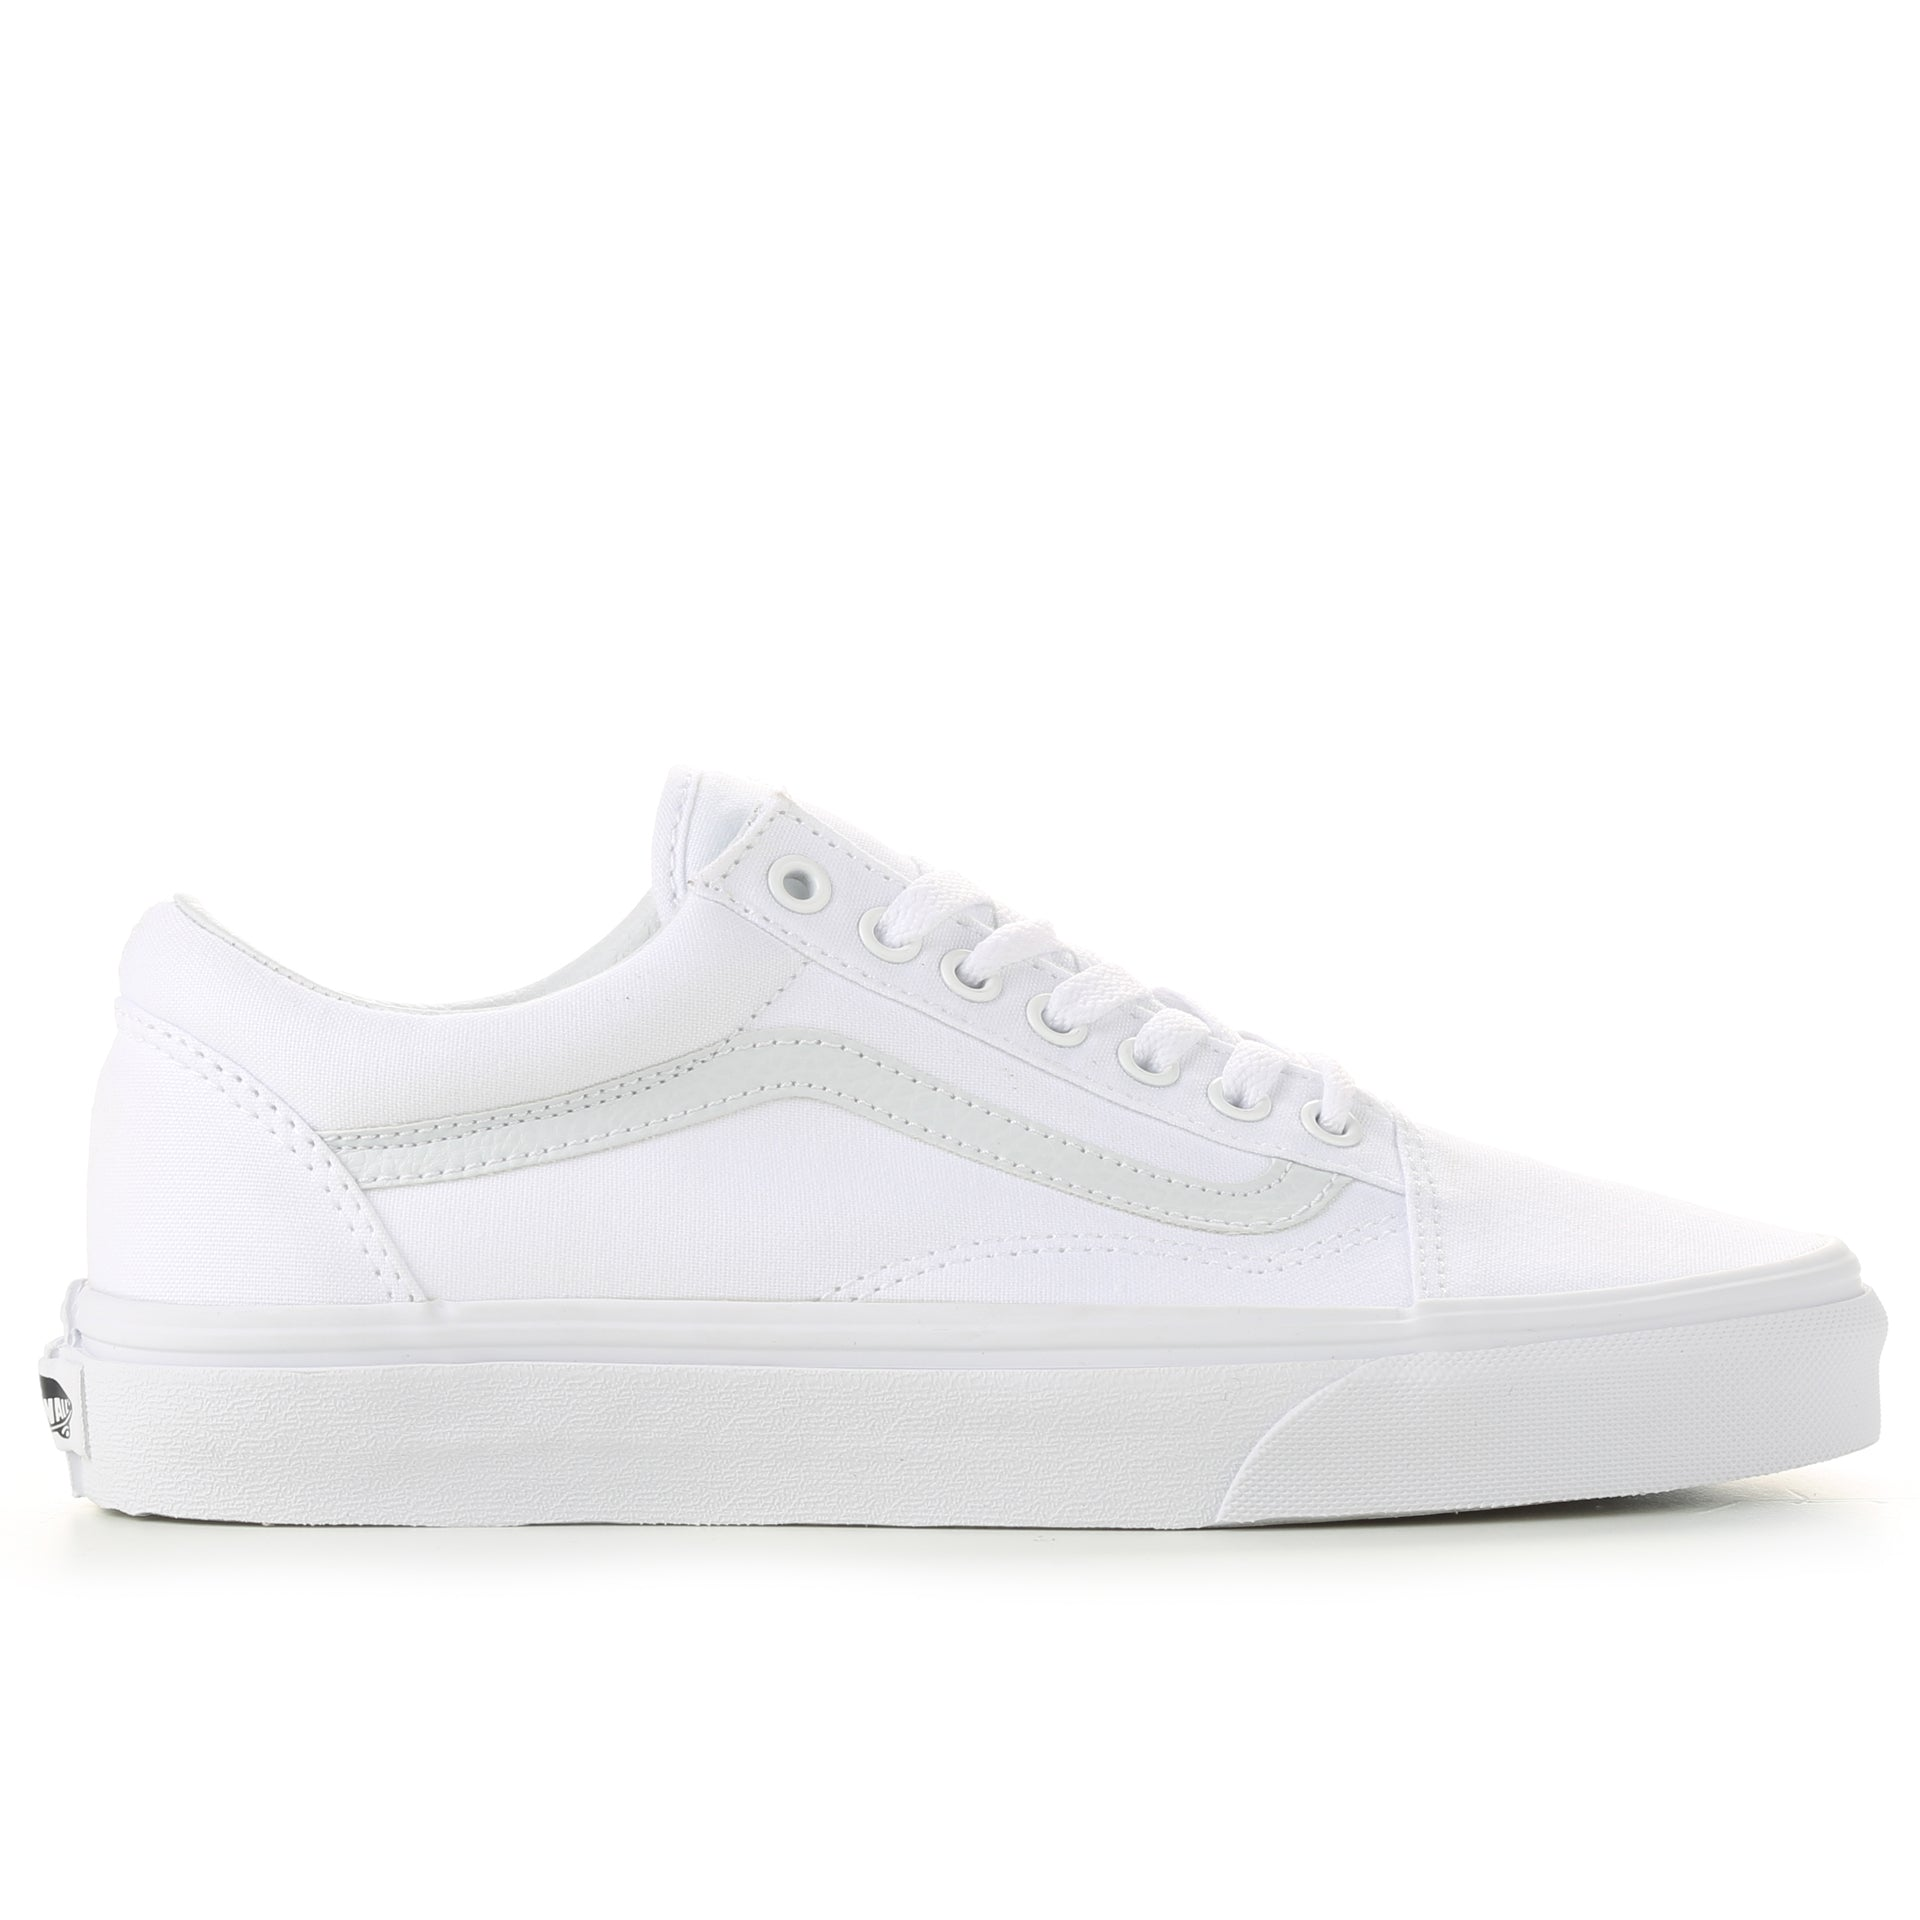 1344d89efe Vans Canvas Old Skool - True White - New Star